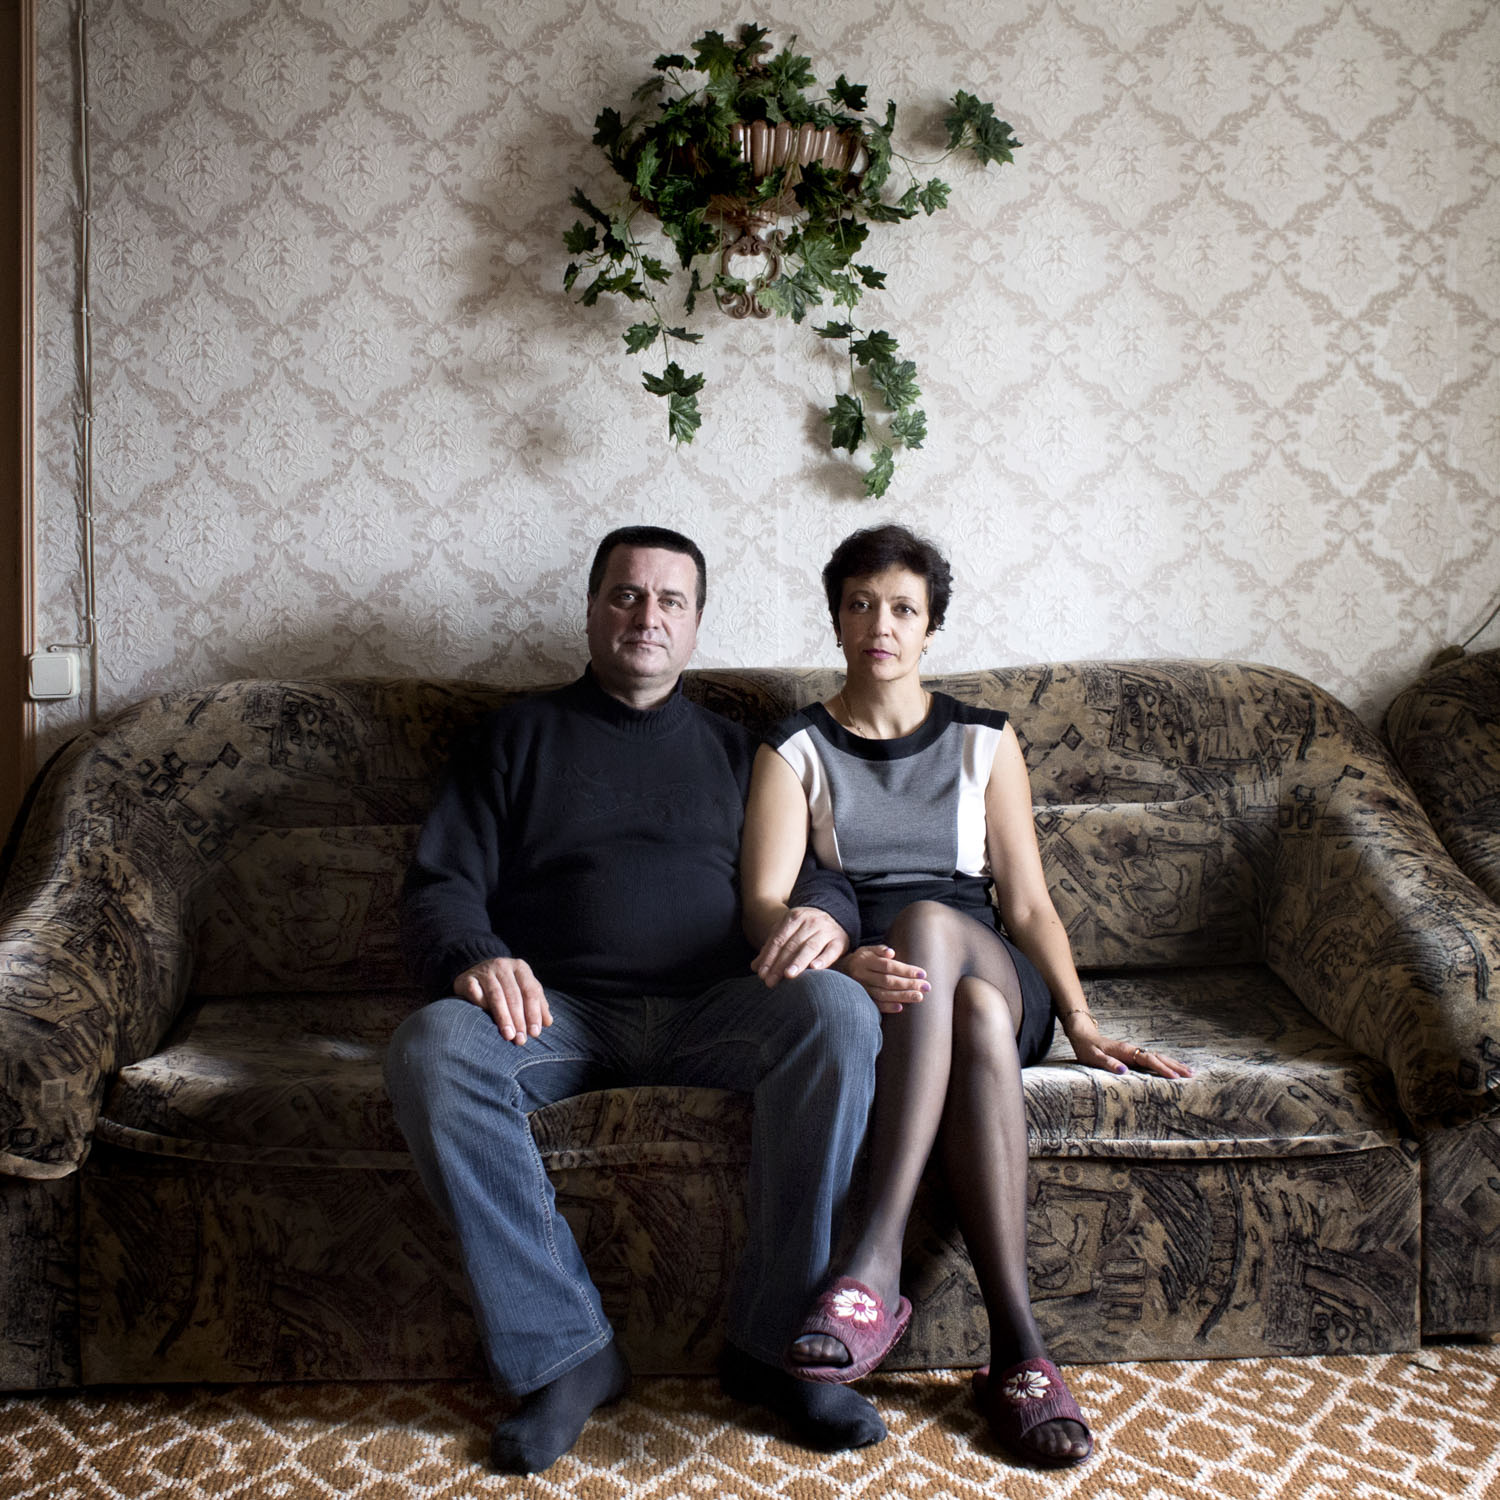 Elvira (Tatar/Muslim) and Stanislav (Russian/Christian) have been married for 25 years. They have two daughters, Vesta and Diana. Vesta chose the Muslim faith and Diana decided to become a Christian two years ago. Both are married to partners of the same faith.